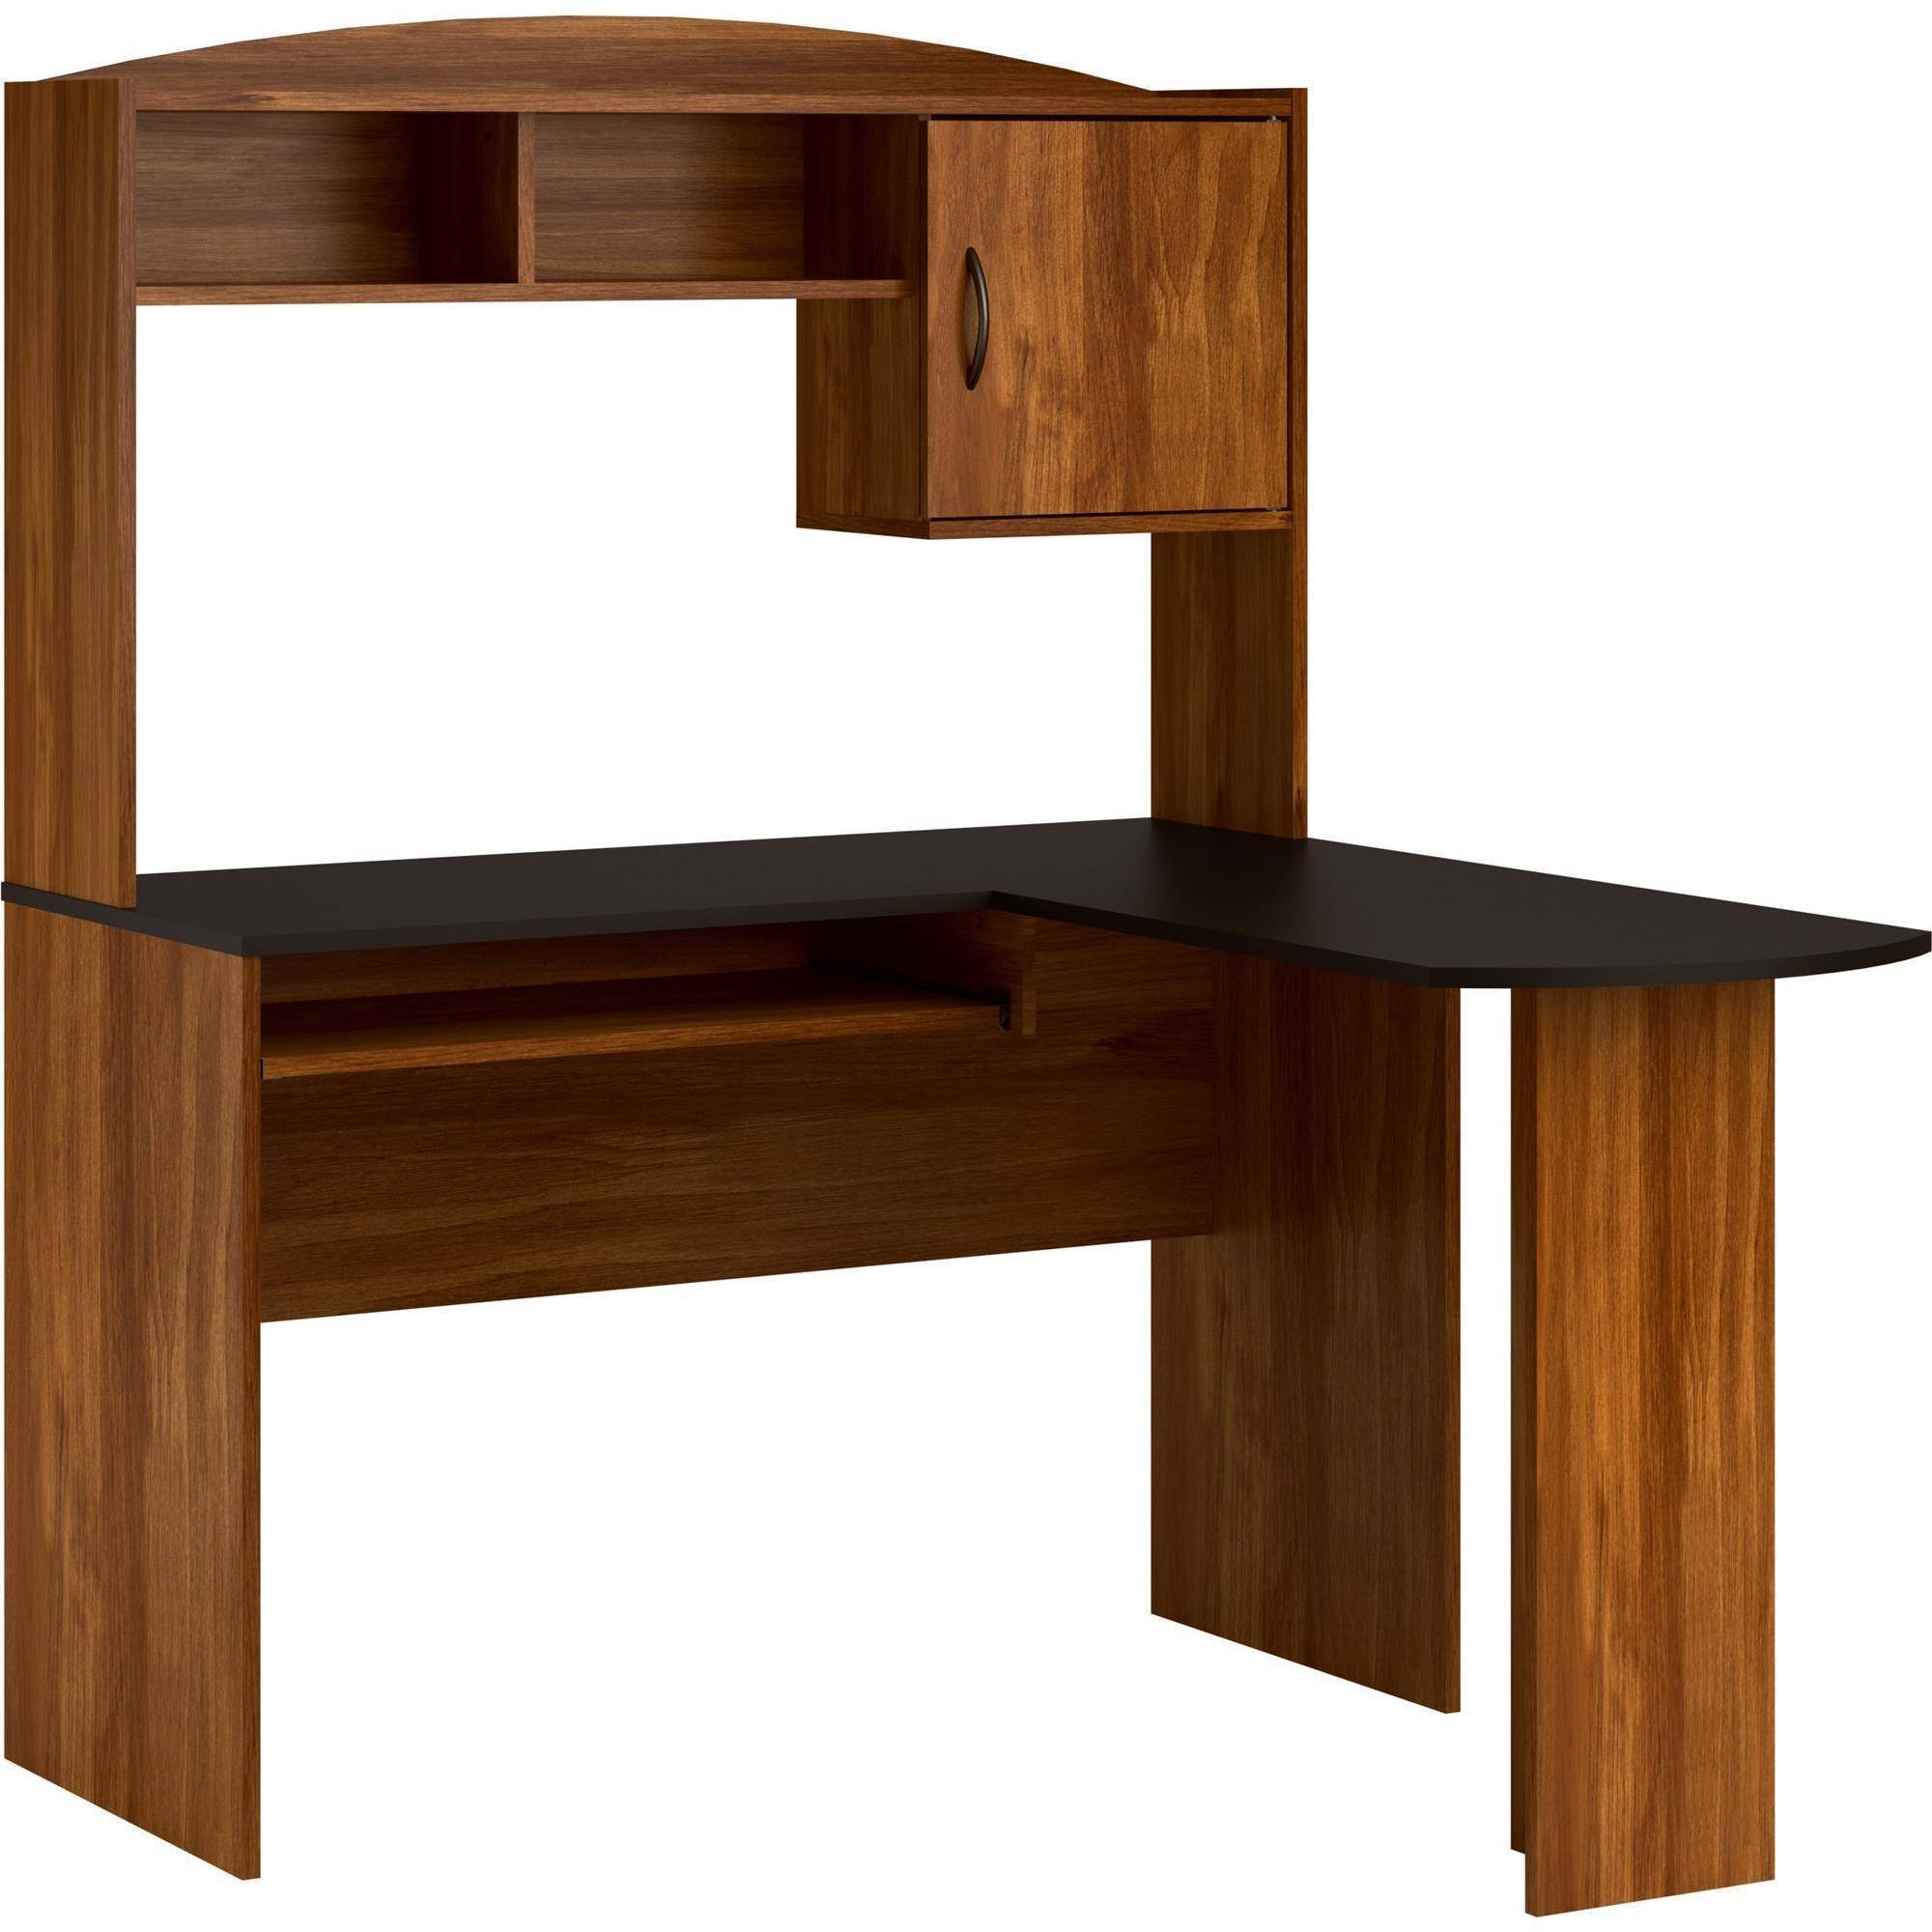 Home Office L Shaped Desk mainstays l-shaped desk with hutch, multiple finishes - walmart